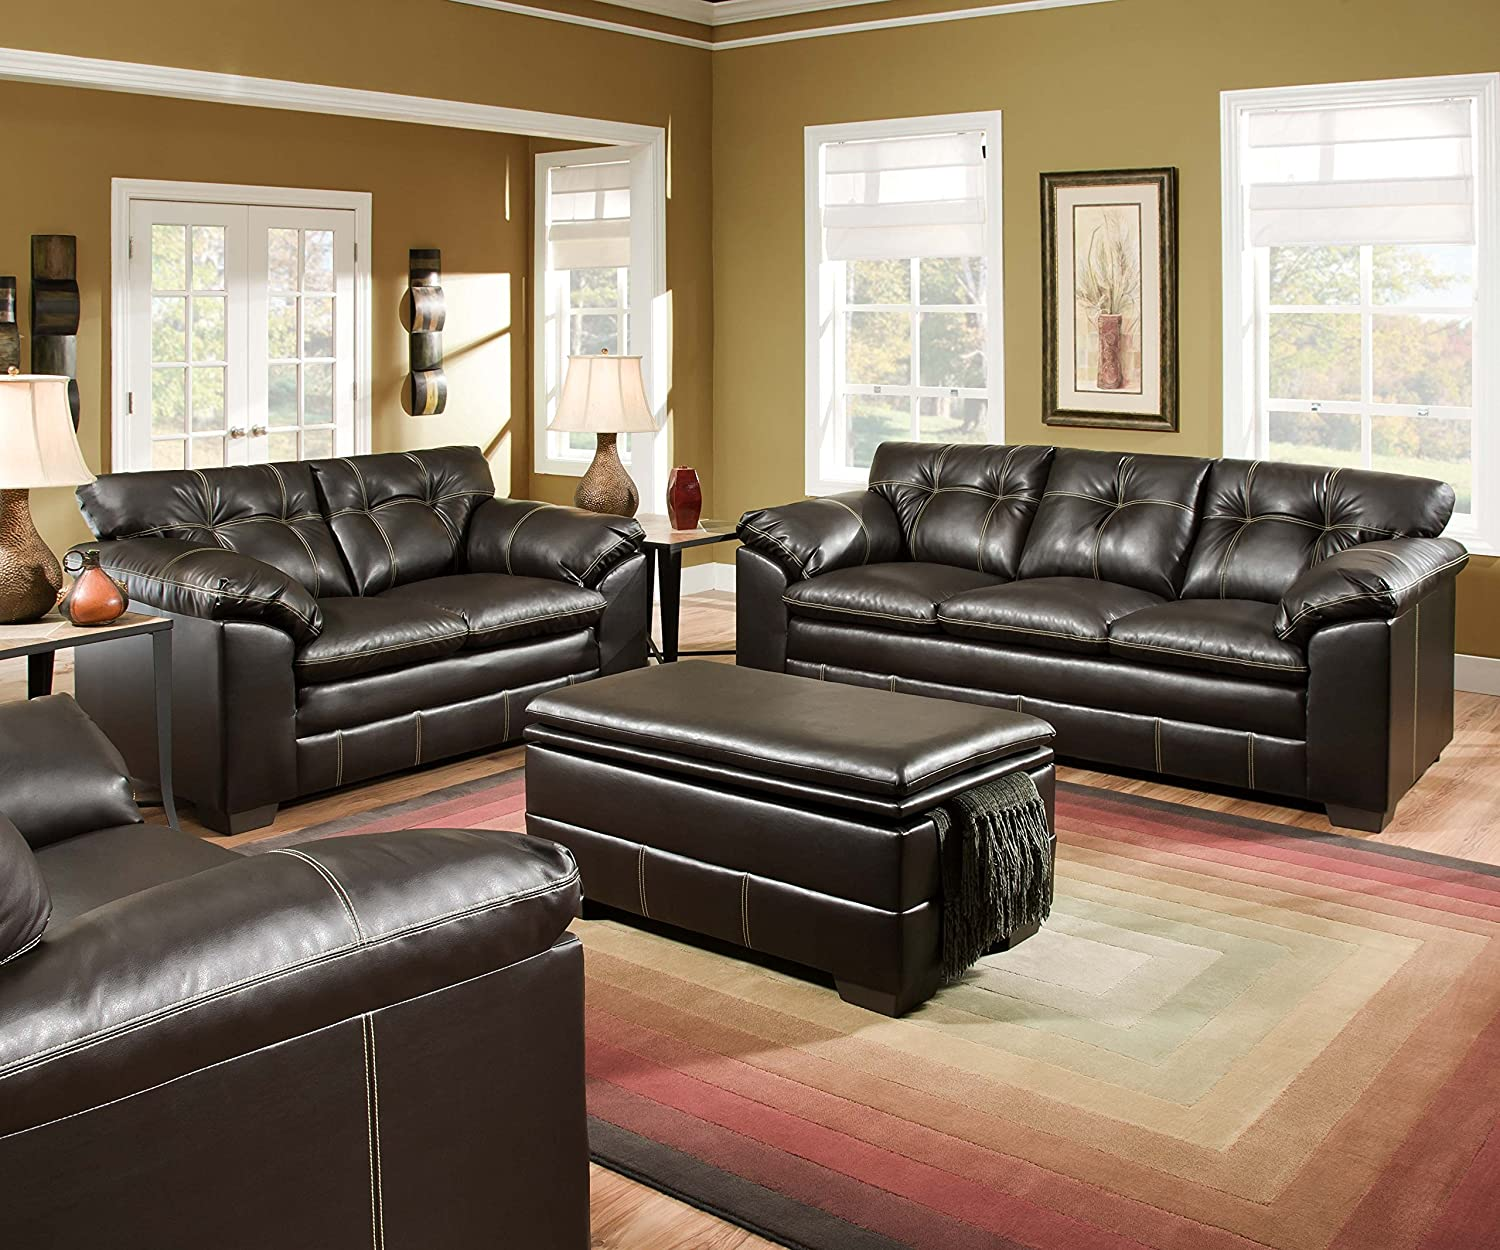 Nice Amazon.com: Simmons Upholstery 6769 03 Premier Chocolate Bonded Leather Sofa:  Kitchen U0026 Dining